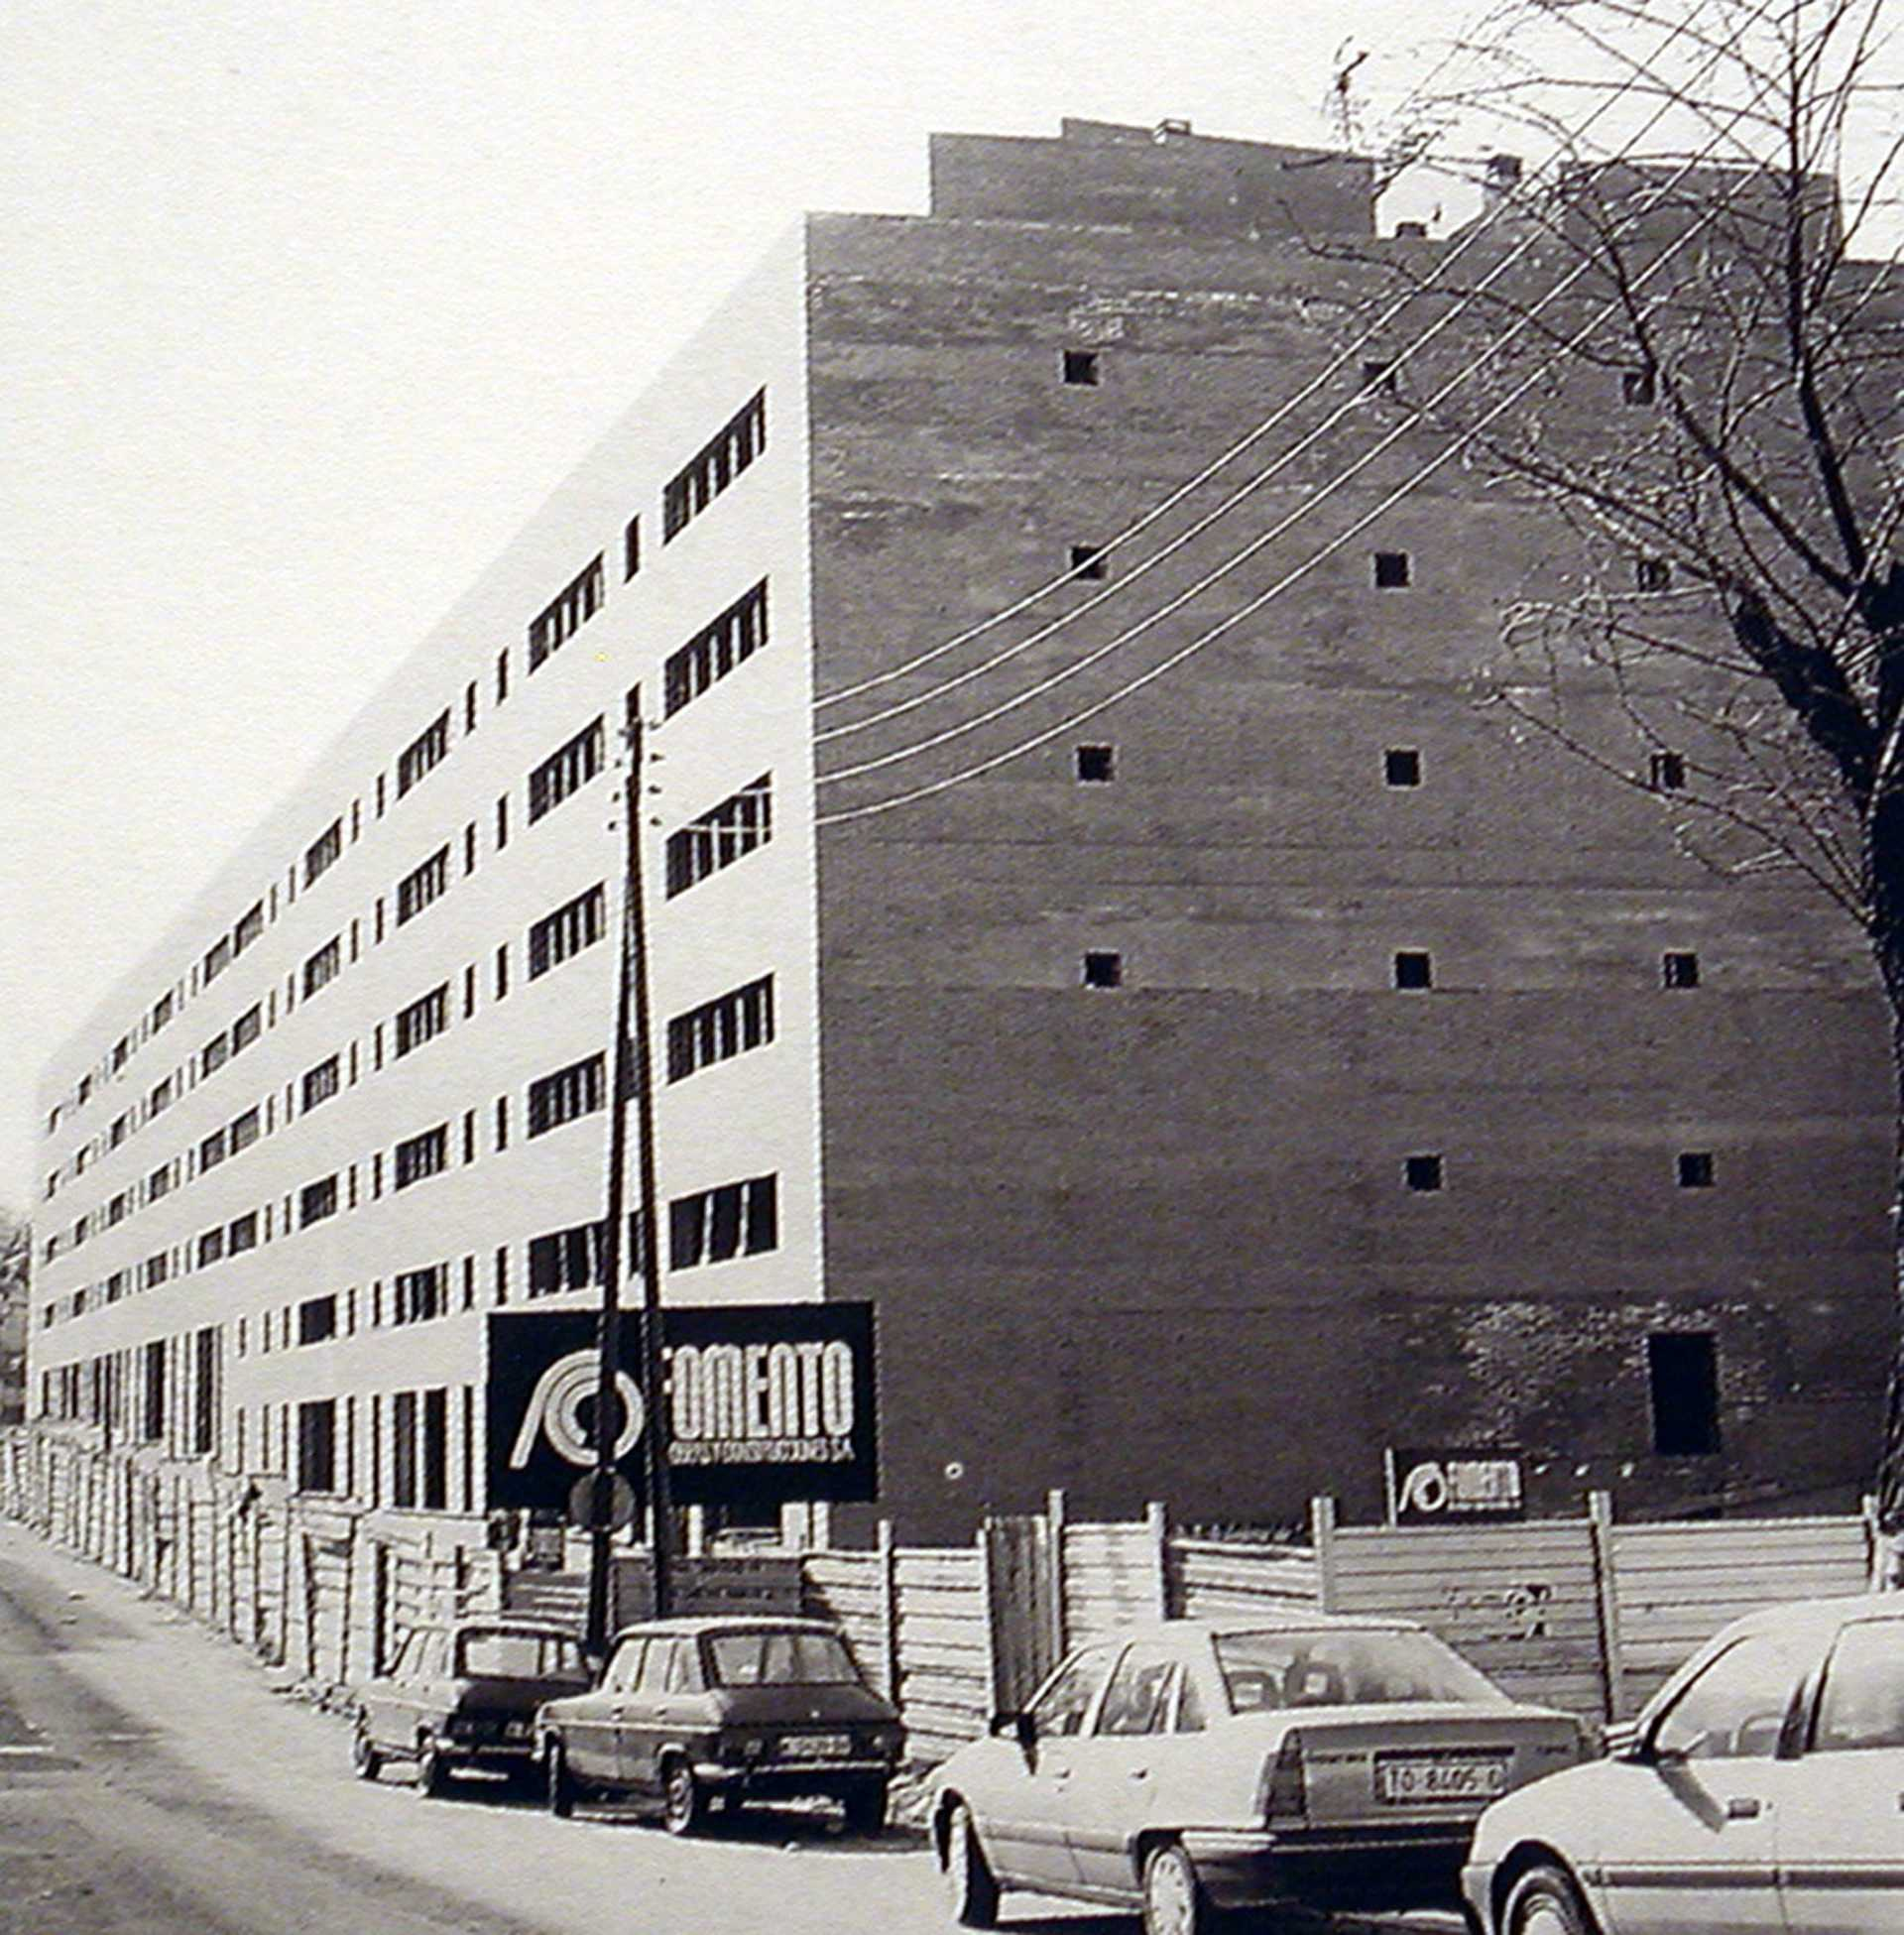 Interview with Alberto Campo Baeza  - 01 Housing Vallecas ICON 57